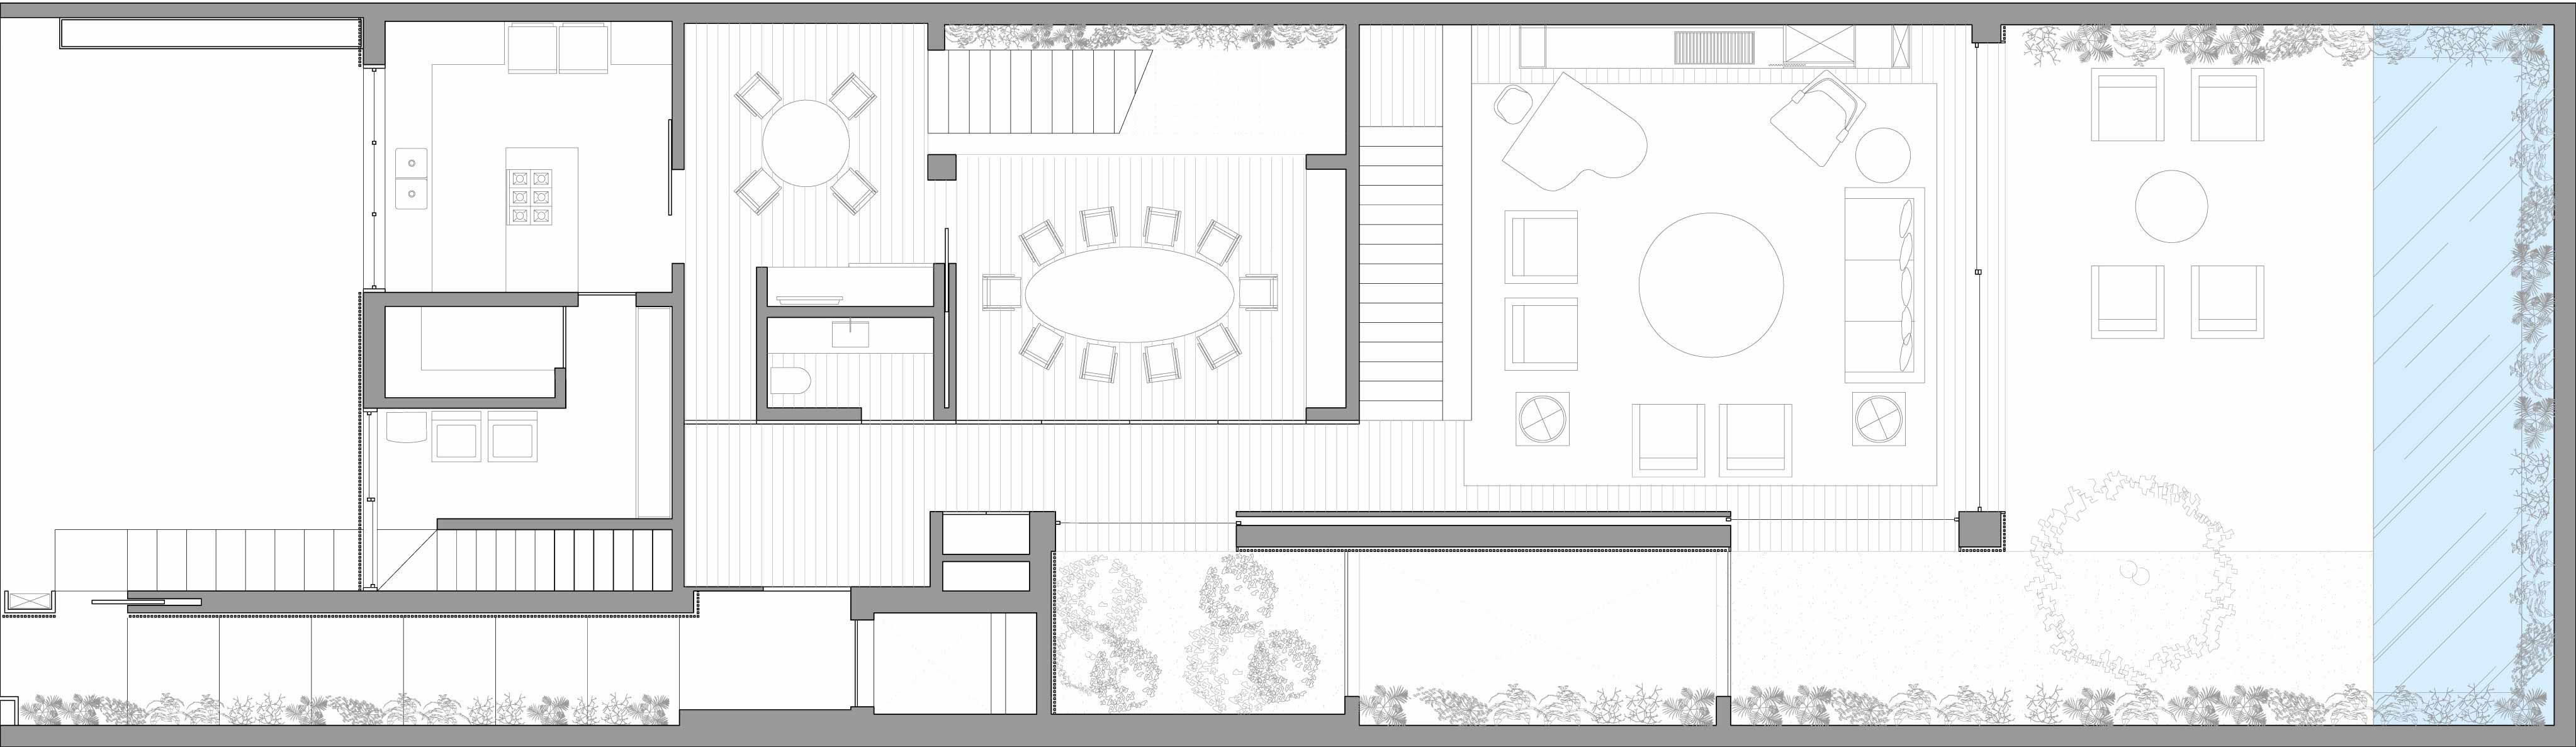 Ground Floor Plan, Sophisticated Family Home in São Paulo, Brazil